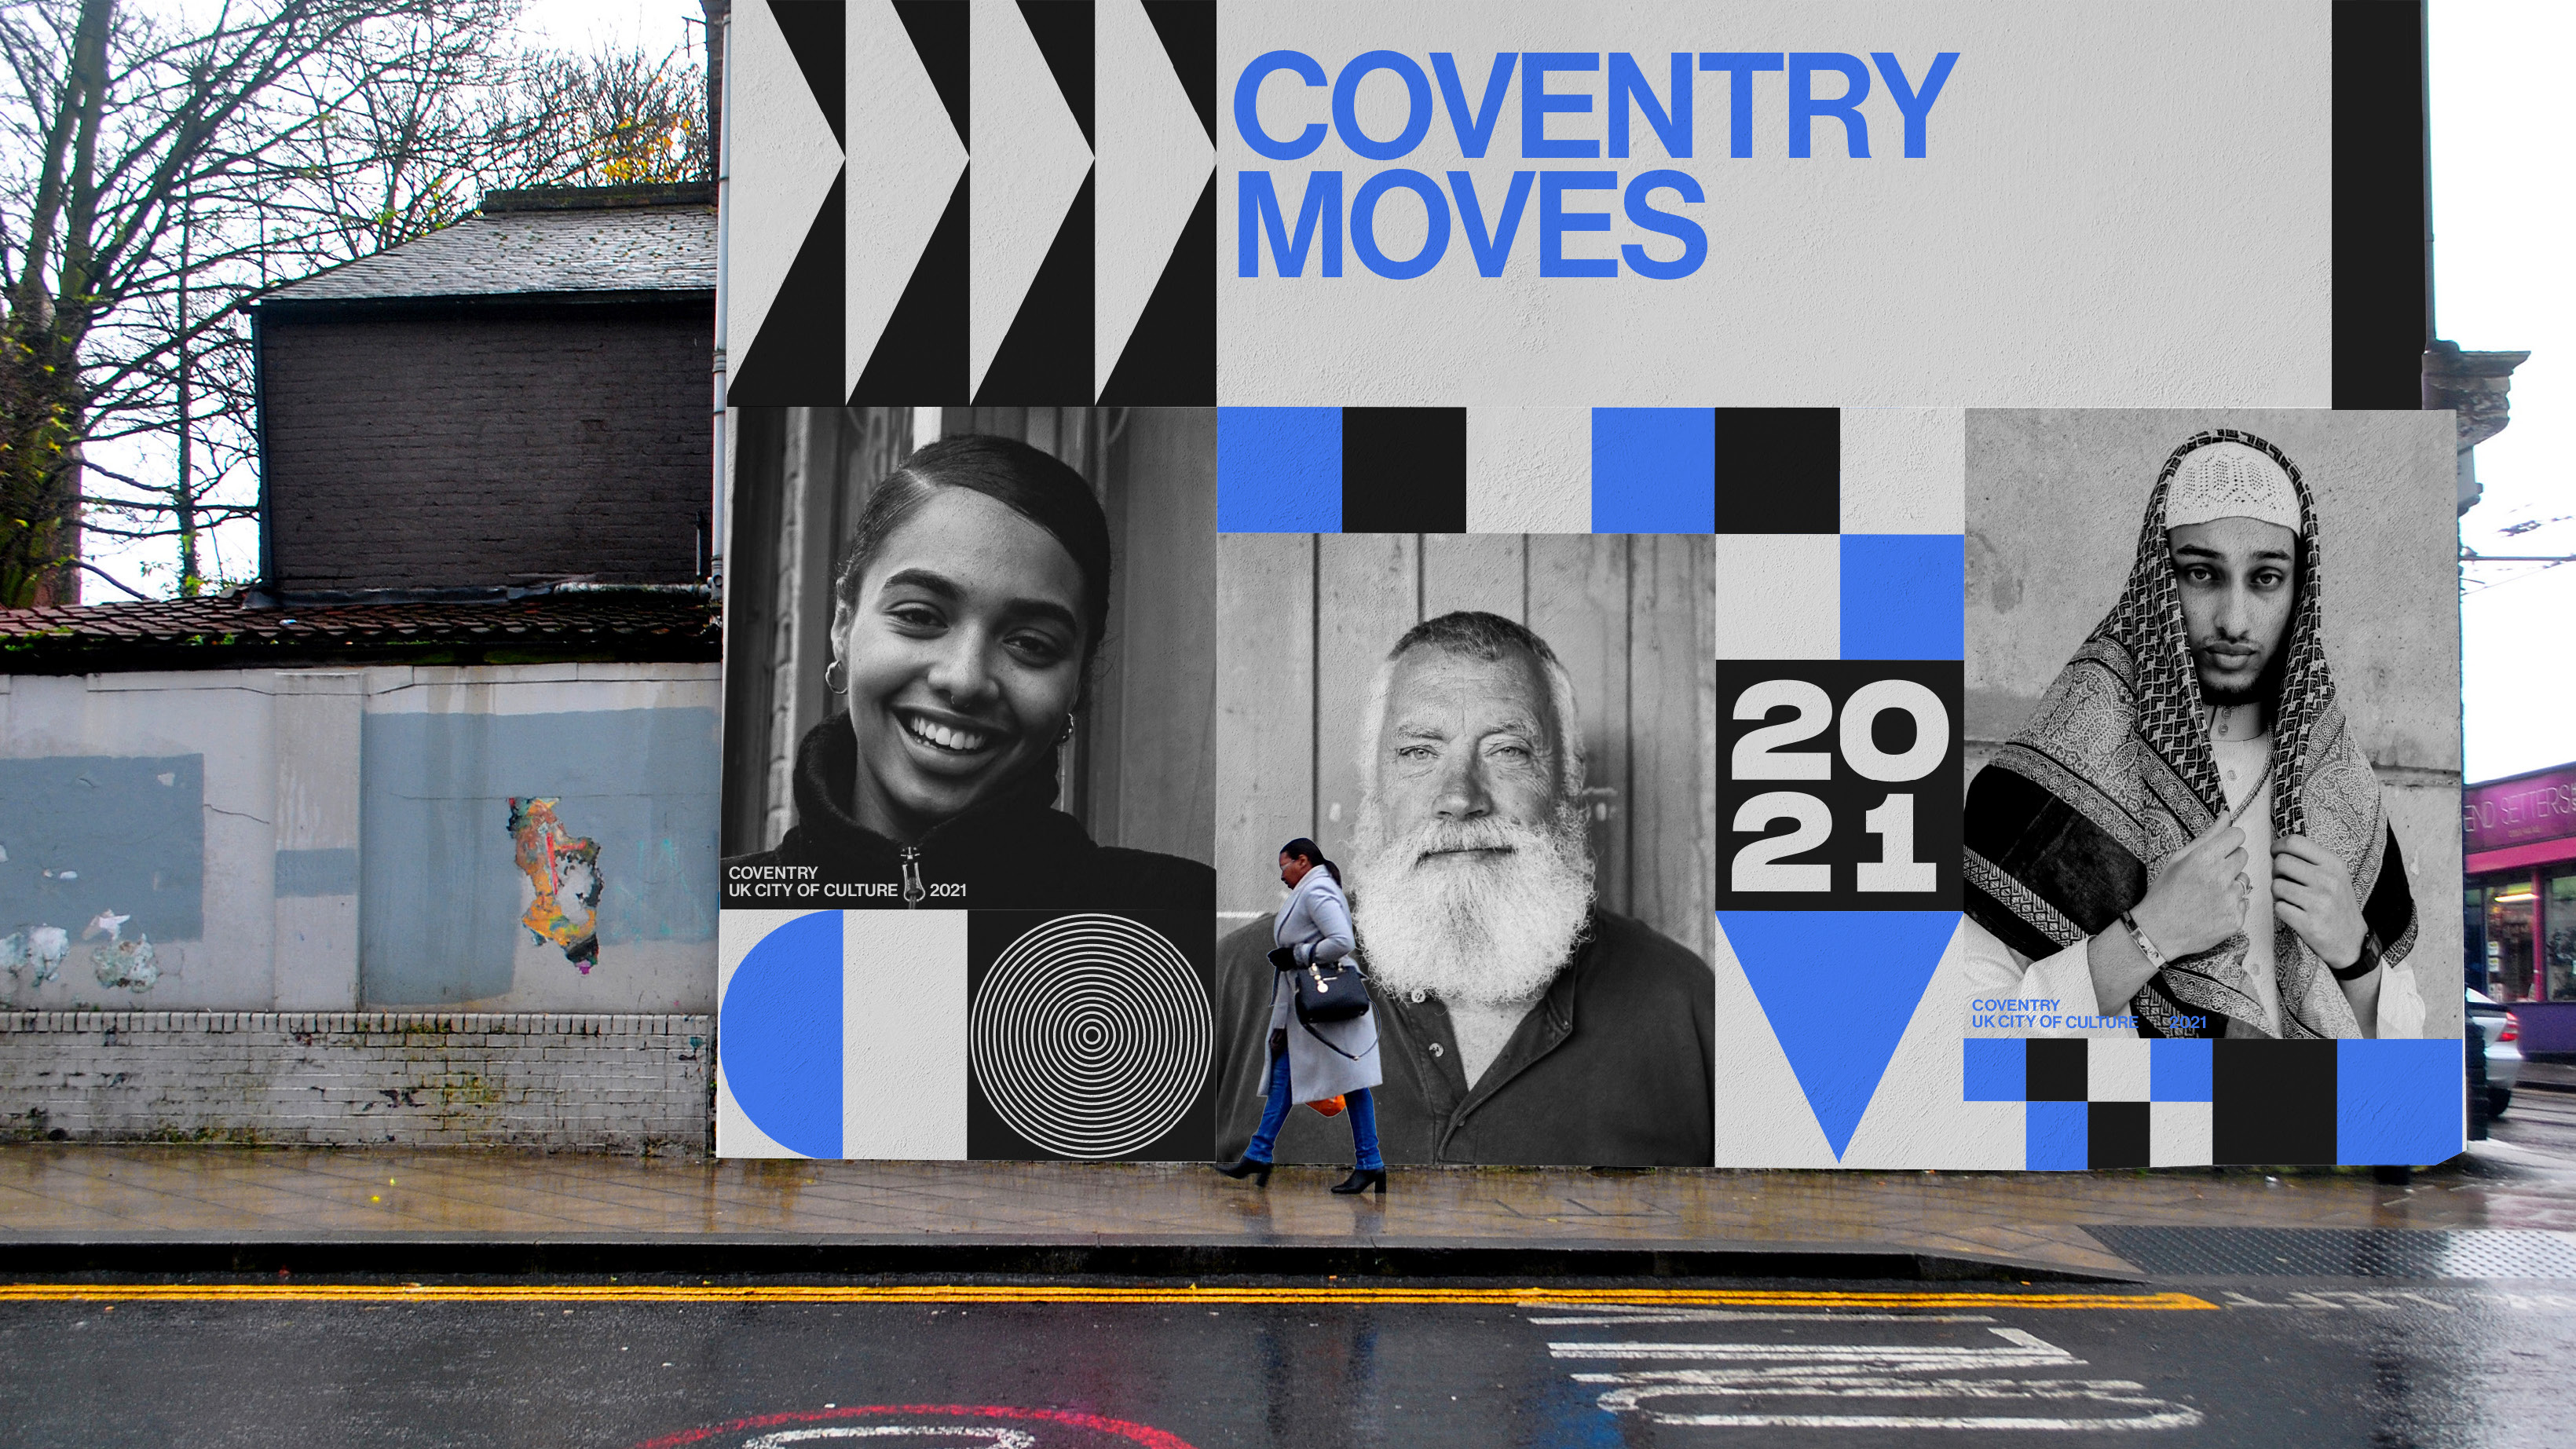 2020-07/coventry-moves-ooh-4